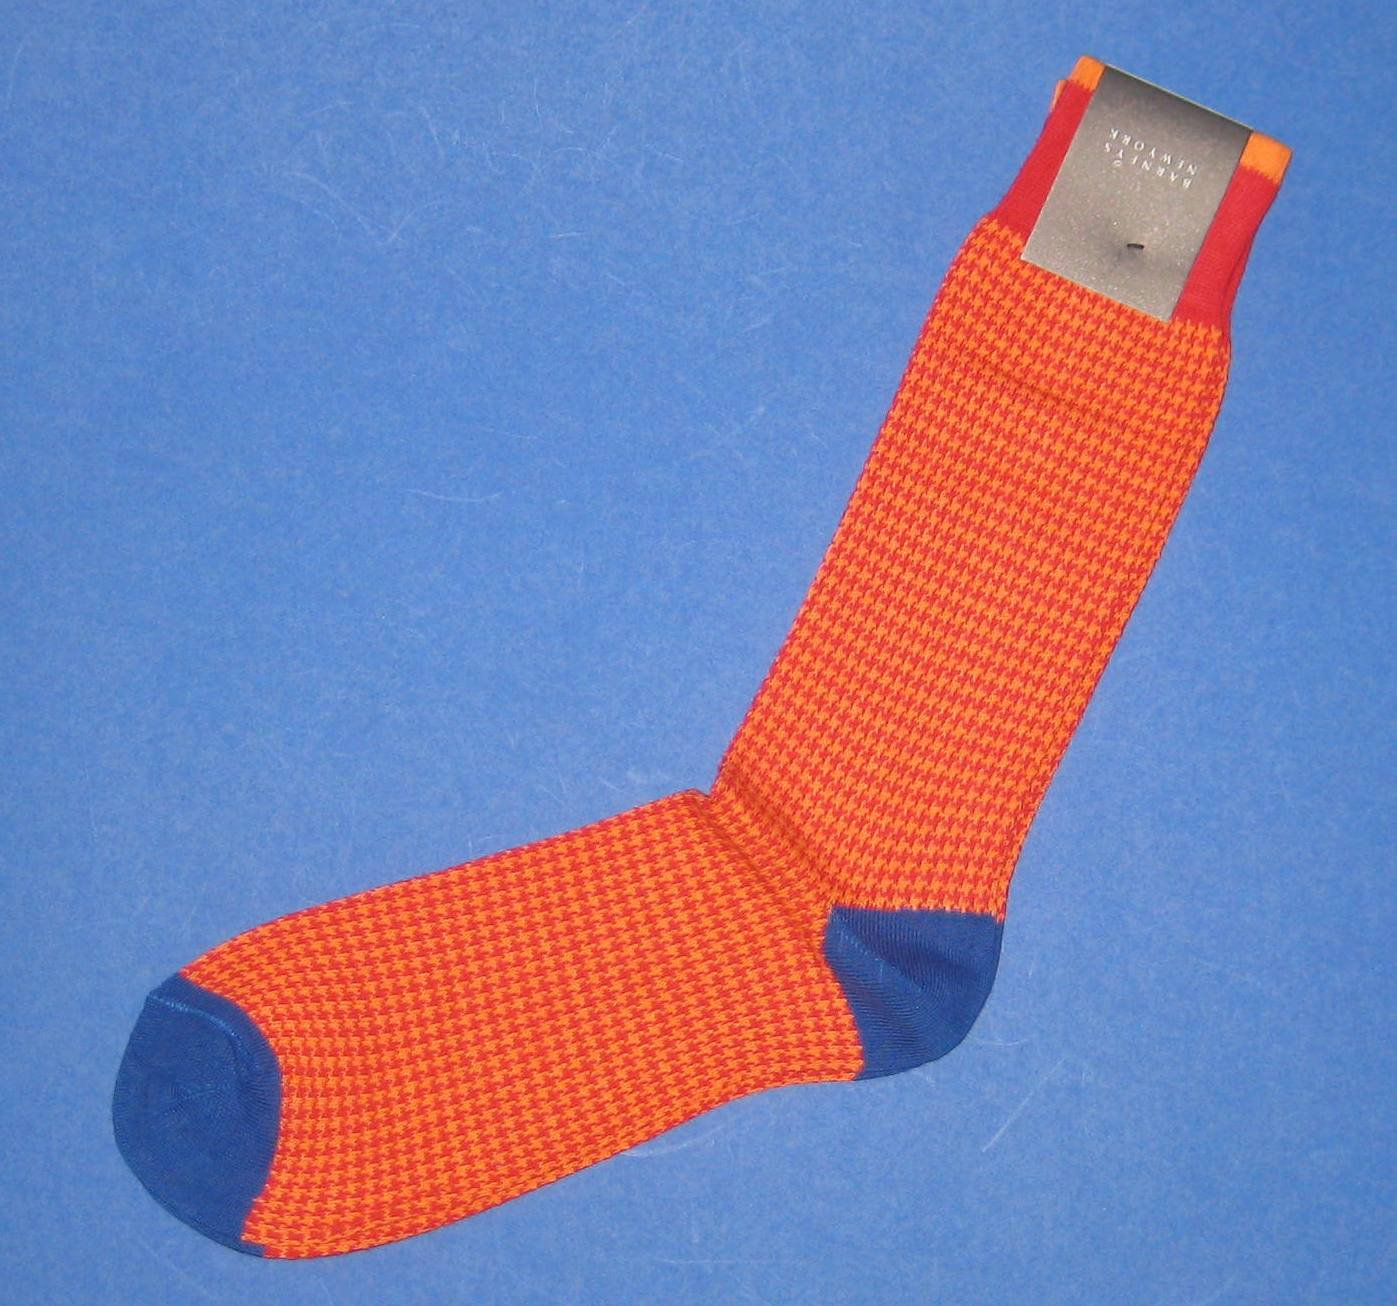 NWT Barneys New York - Italian Made Cotton Knit Orange Houndstooth Dress Socks